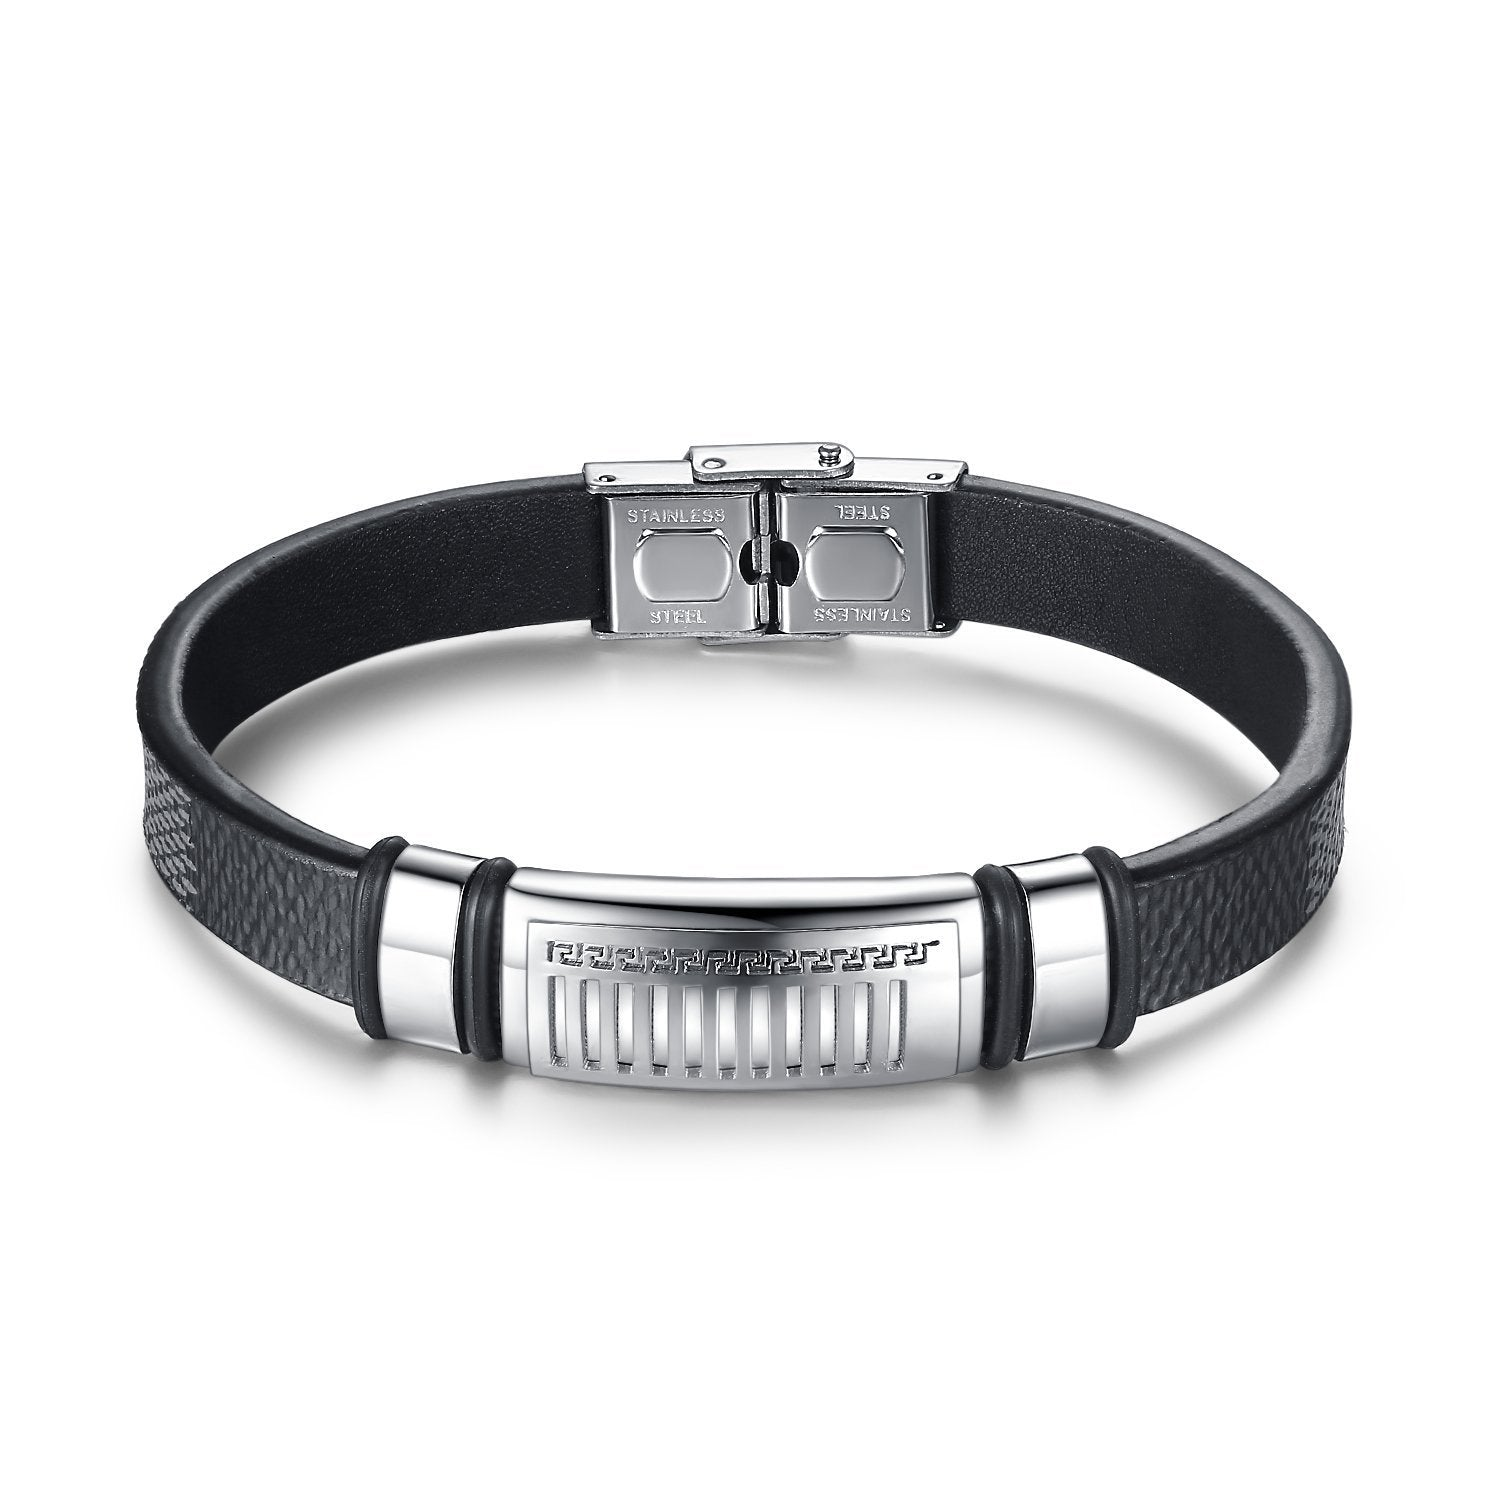 Aoiy Men's Stainless Steel Greek Key and Black Leather Bracelet Ggb014wu @ Sons of Odin™ - Jewelry